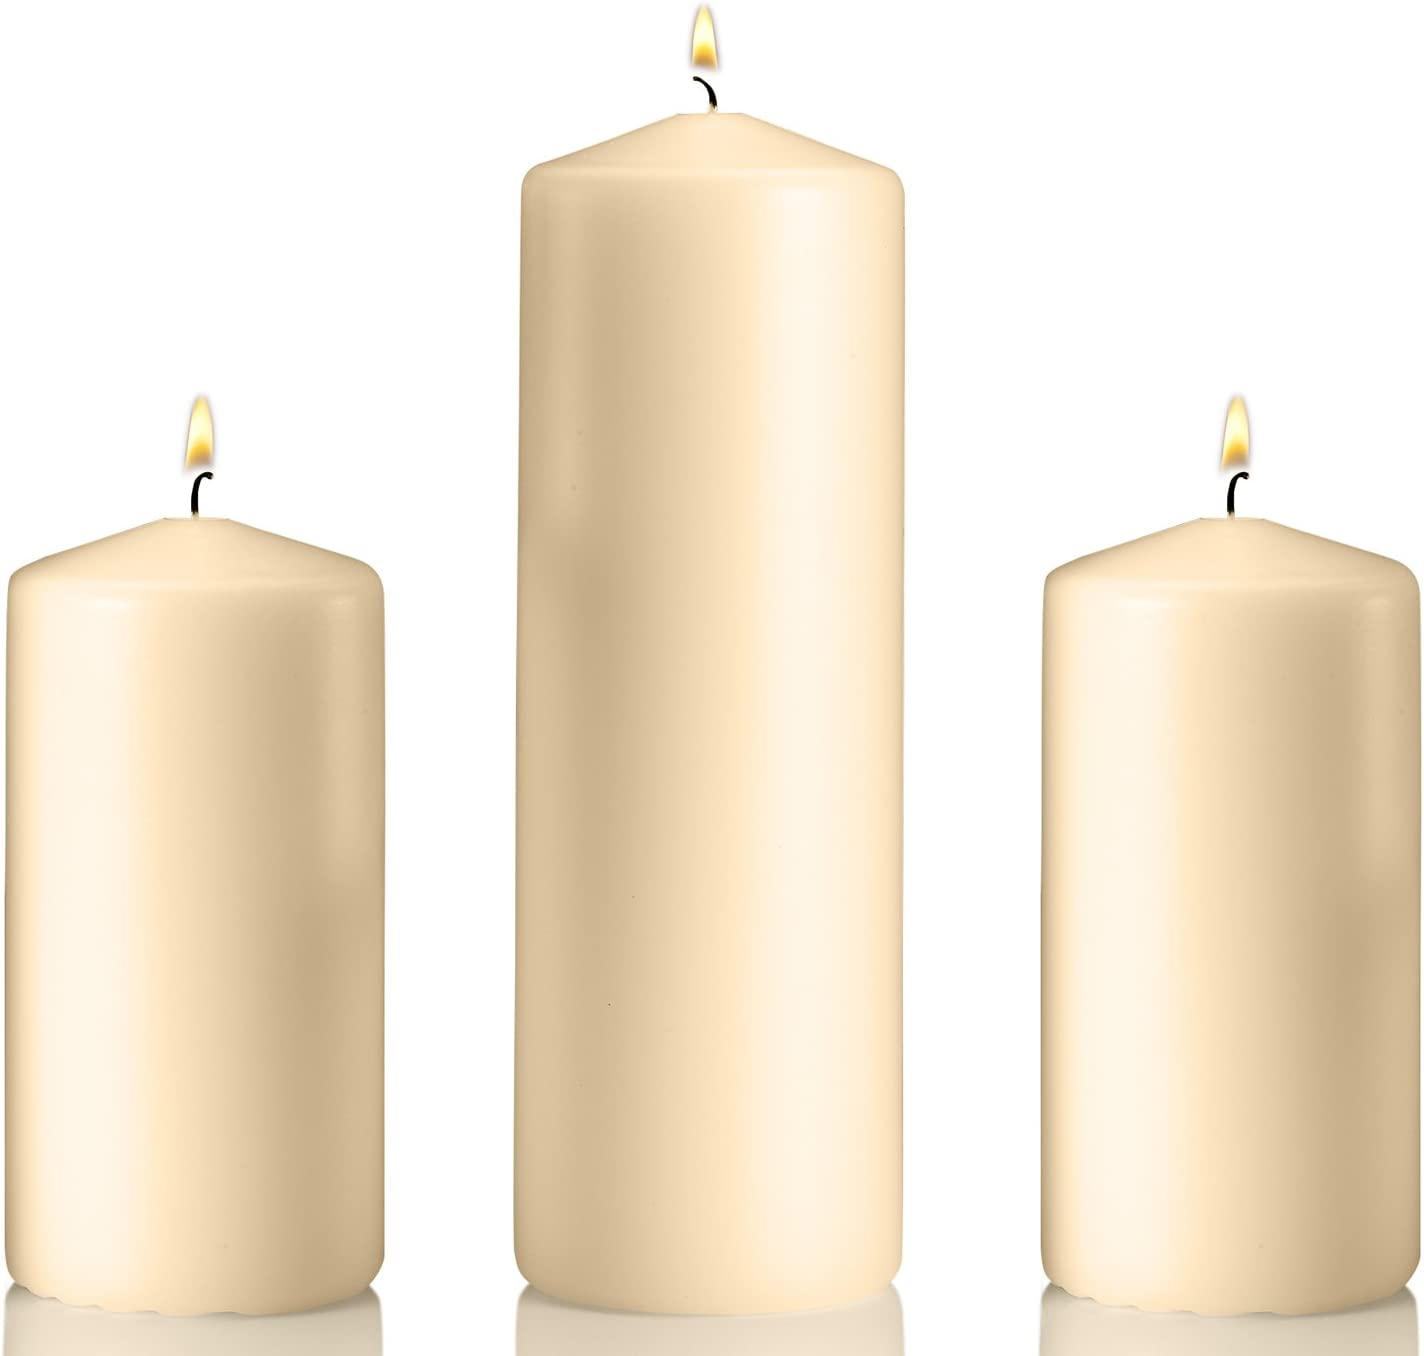 Set of 3 Unscented Pillar Candles – 2 Candles 3x6 Inch and 1 Candle 3x9 Inch, – Extra Long Burn Time – Ideal for Wedding, Restaurants, Spa, Hotels, Home Decor. (Vanilla)